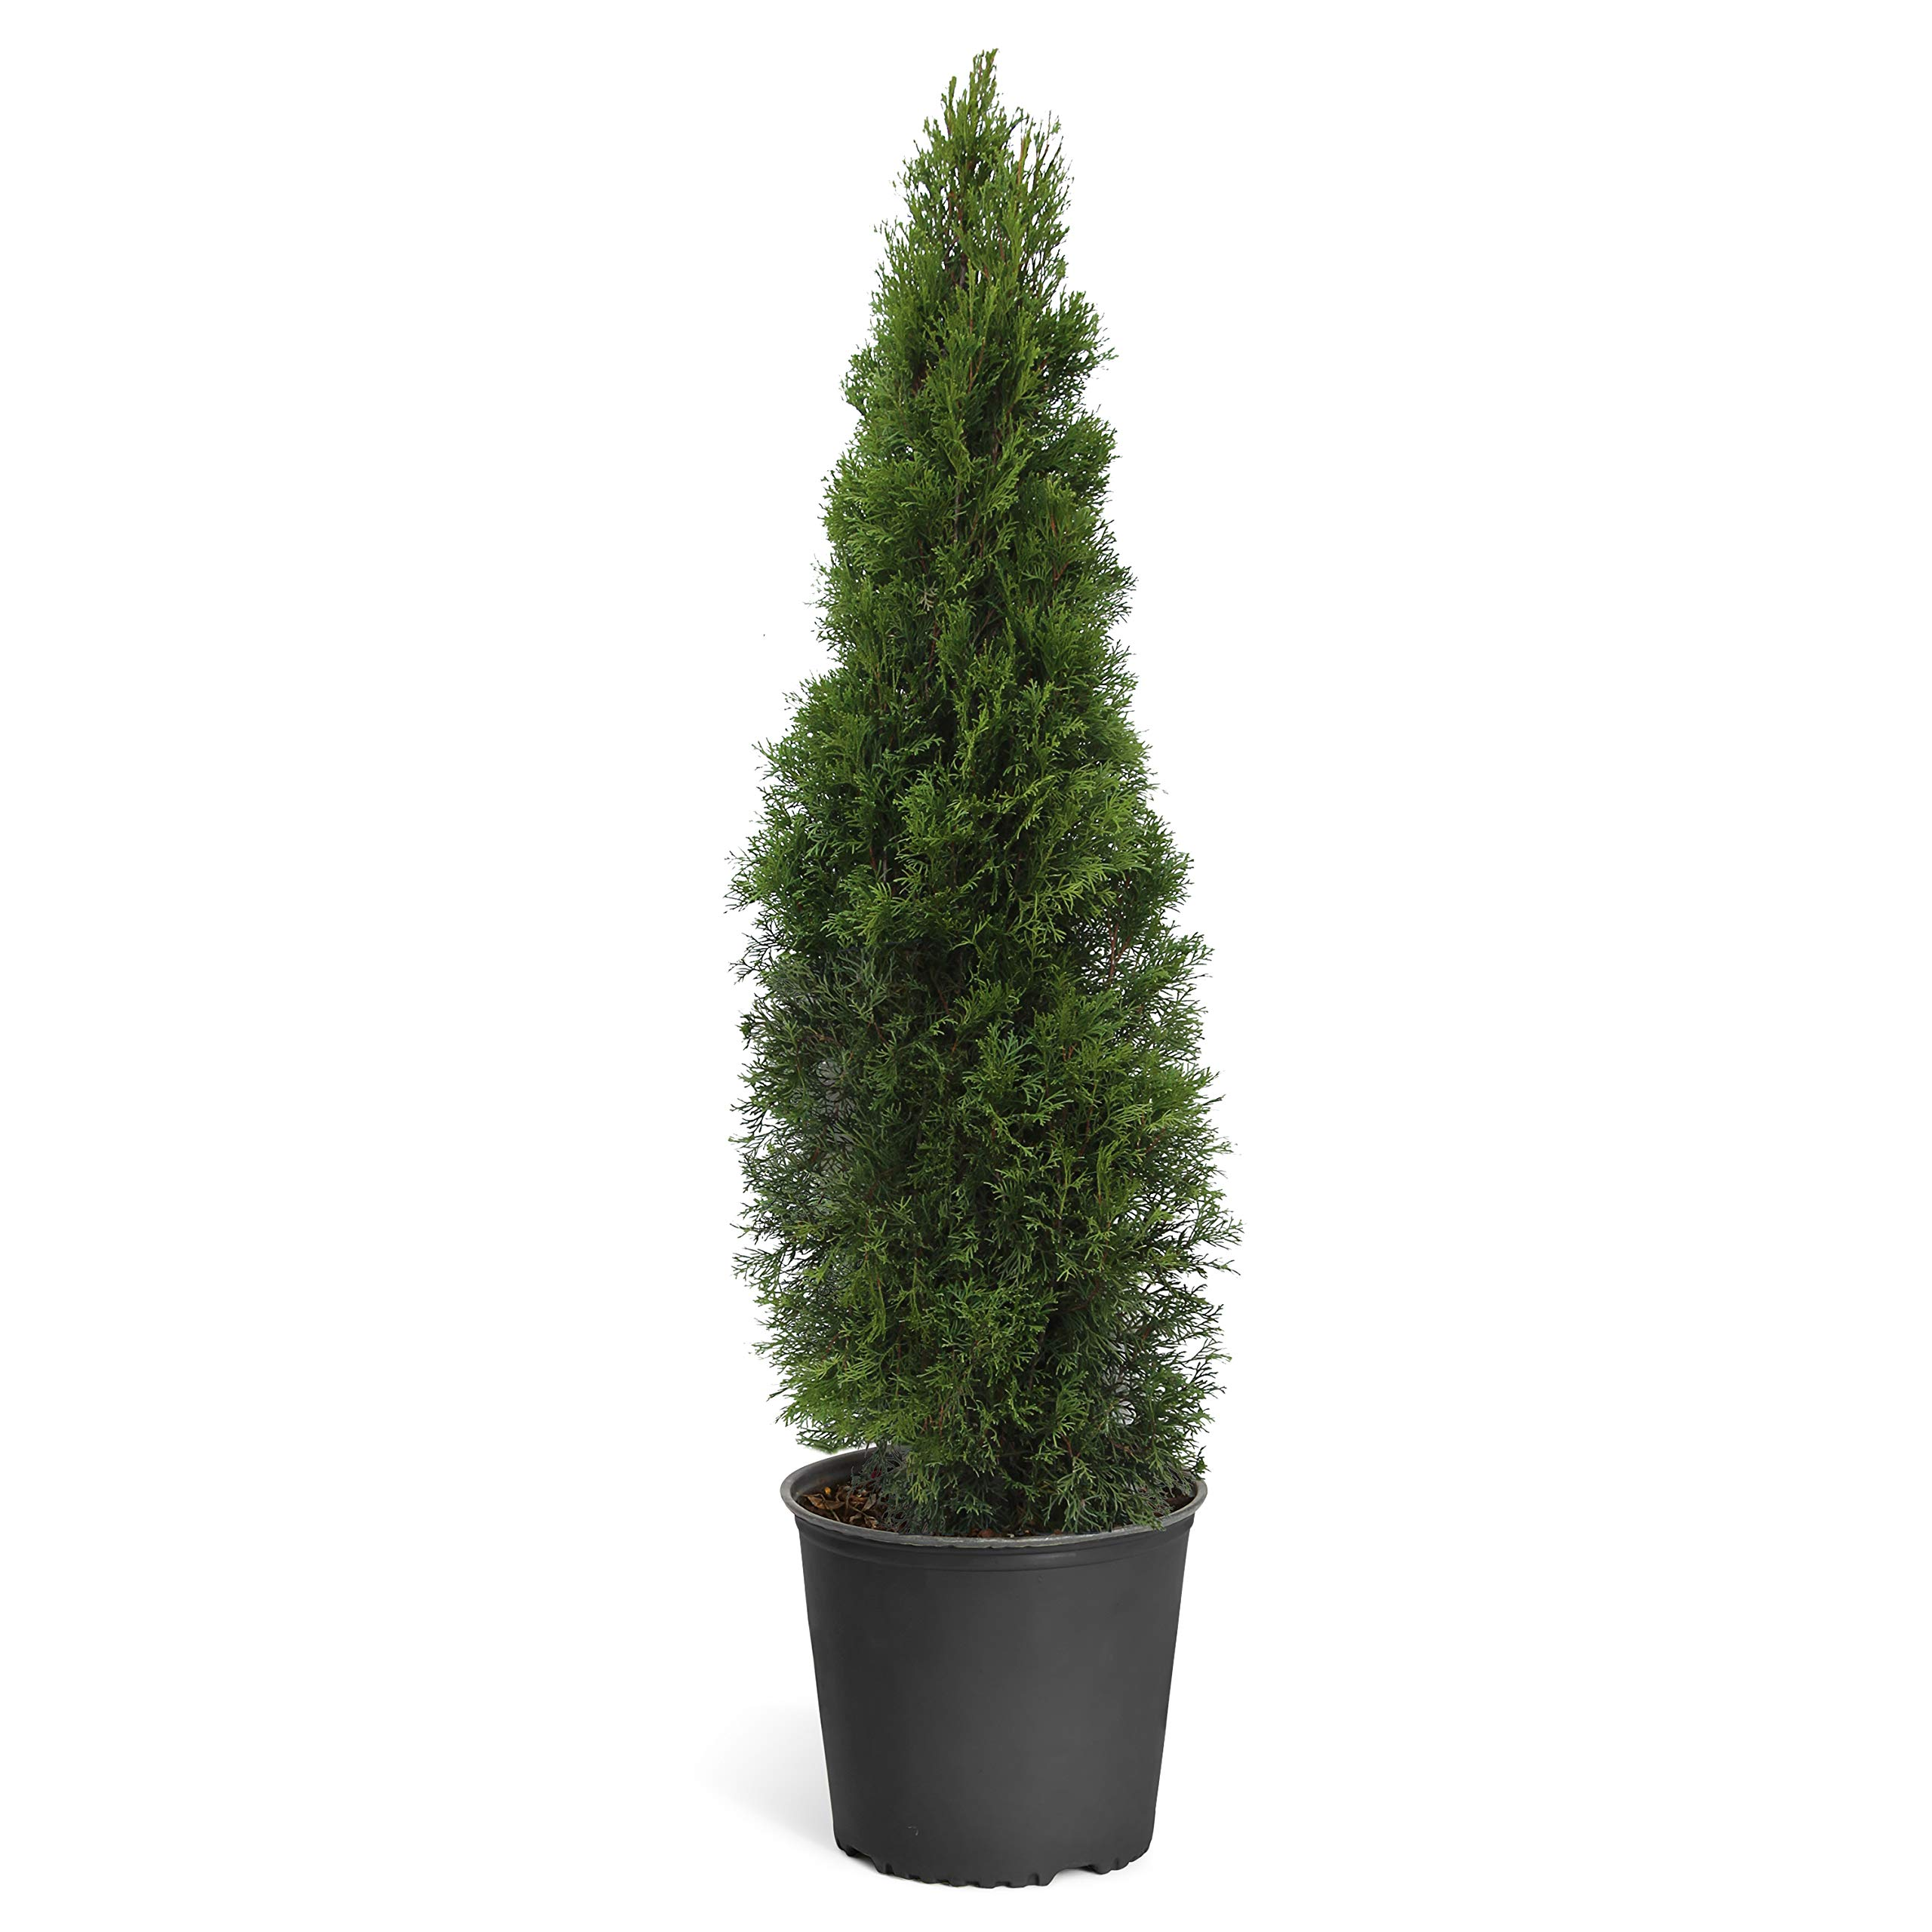 Emerald Green Arborvitae Evergreen Trees- 3-4 ft. Tall in 5 Gallon pots - Perfect for Privacy- Large, Developed Trees with Advanced Root Systems